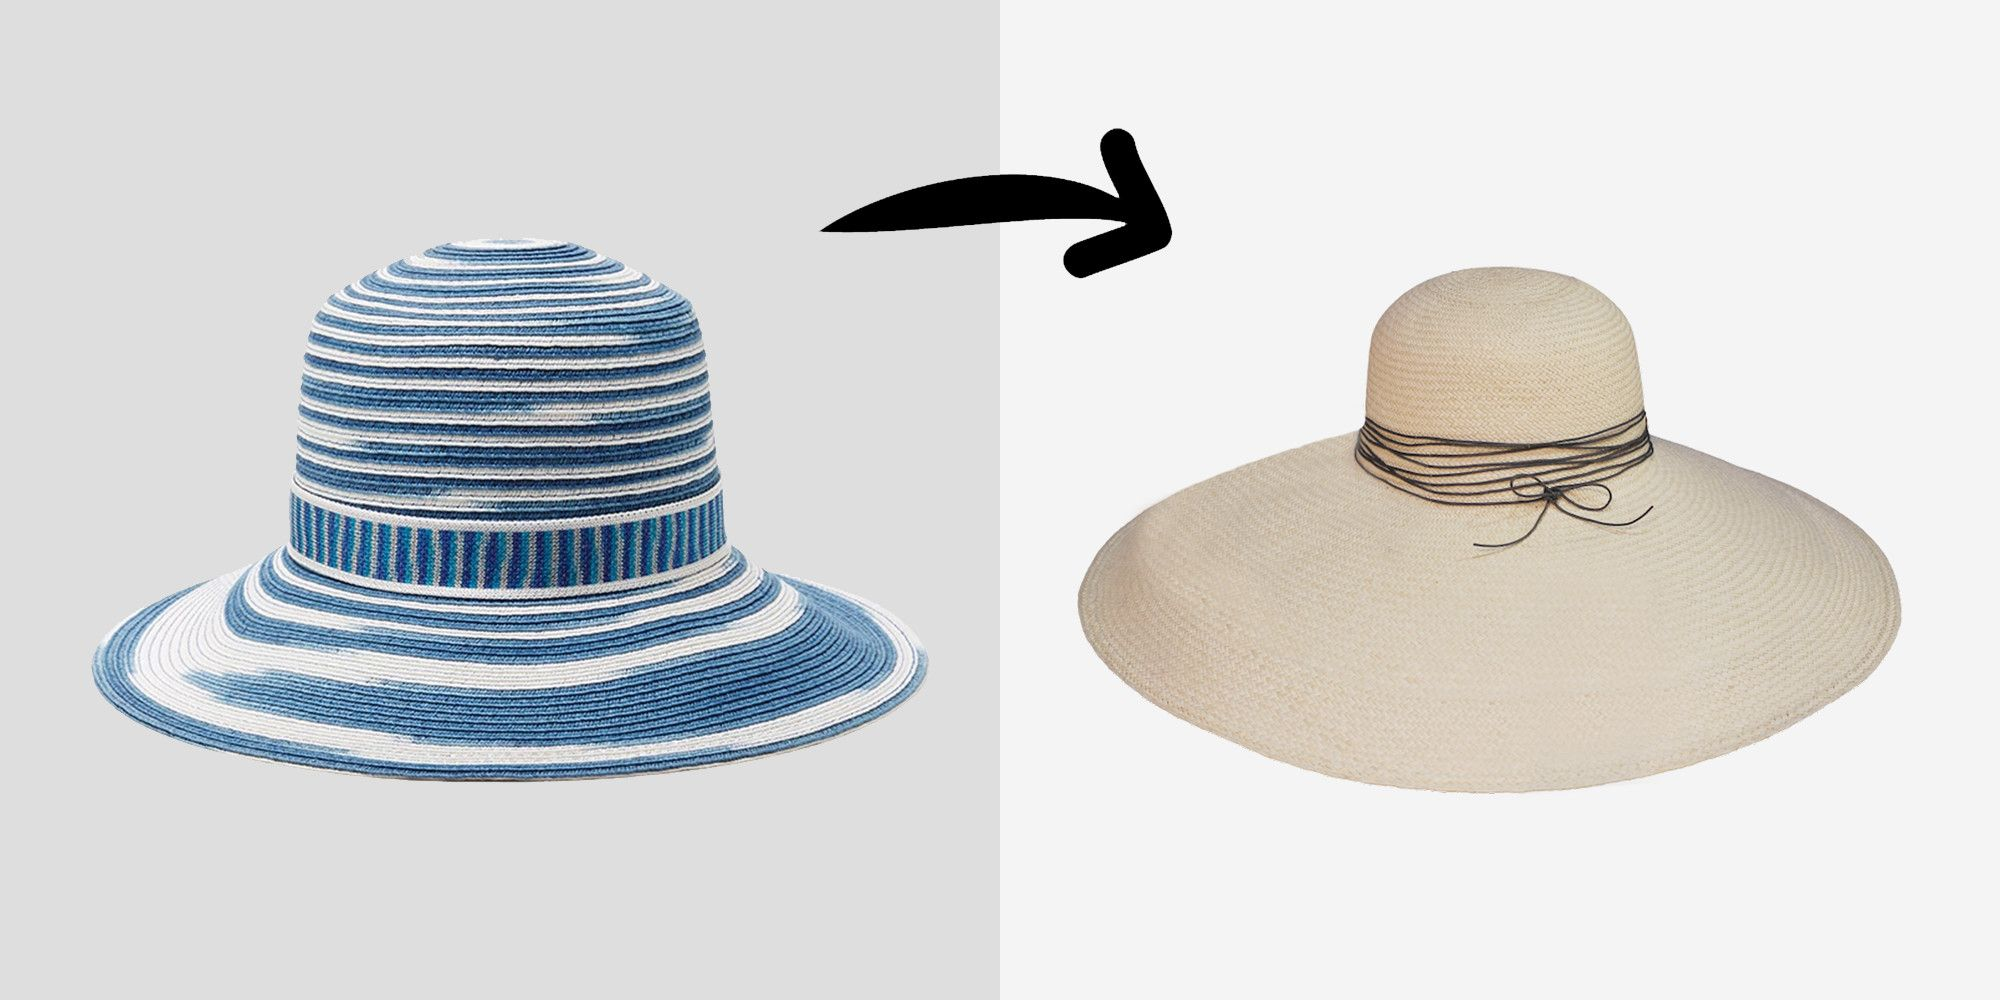 """<p>A wider brim = more sun protection but also more mystery and glamour and allure. Or, at the very least, it makes it easier to pretend you're not sleeping.</p><p><br></p><p><em>Missoni striped sun hat, $395, <a href=""""http://rstyle.me/n/bppueebqb8f"""">modaoperandi.com</a>&#x3B; Artesano Panama hat, $260, <a href=""""http://www.artesano.net/#!product-page/c6np/d034d05c-e8cf-dc44-7d44-a7d16444db63"""">artesano.net</a>.</em></p>"""